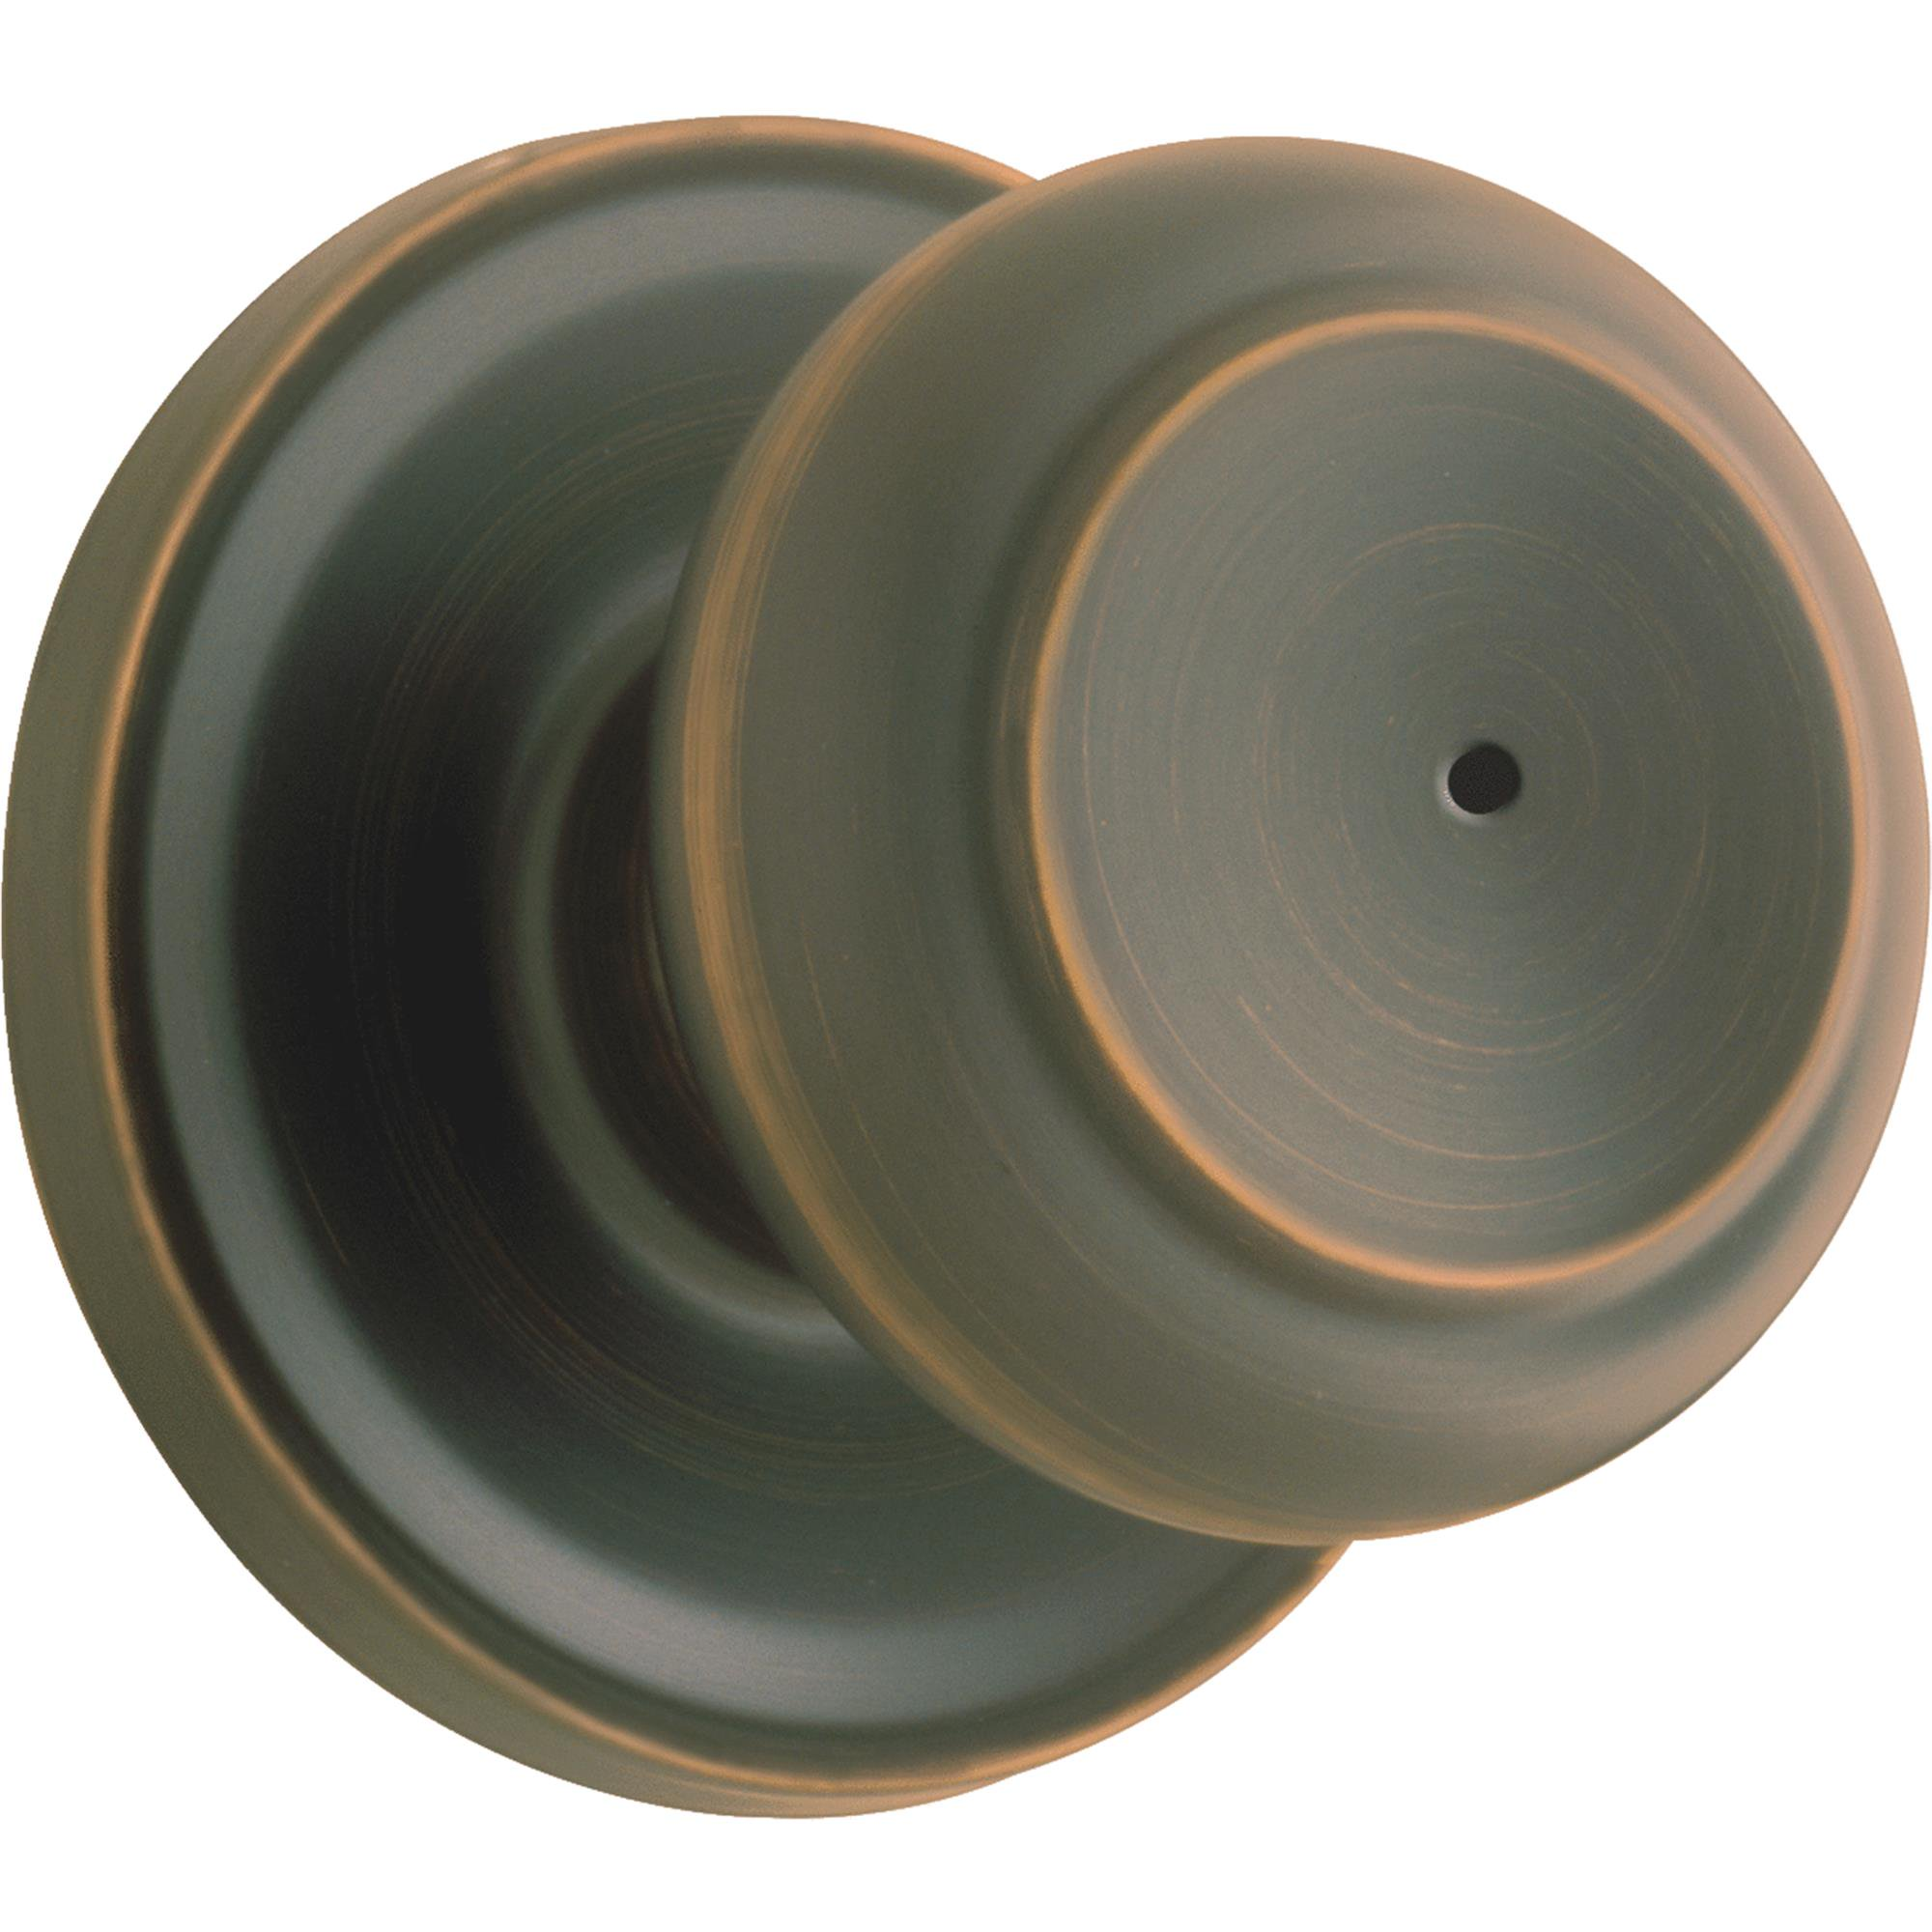 Weiser Troy Bed & Bath Knob